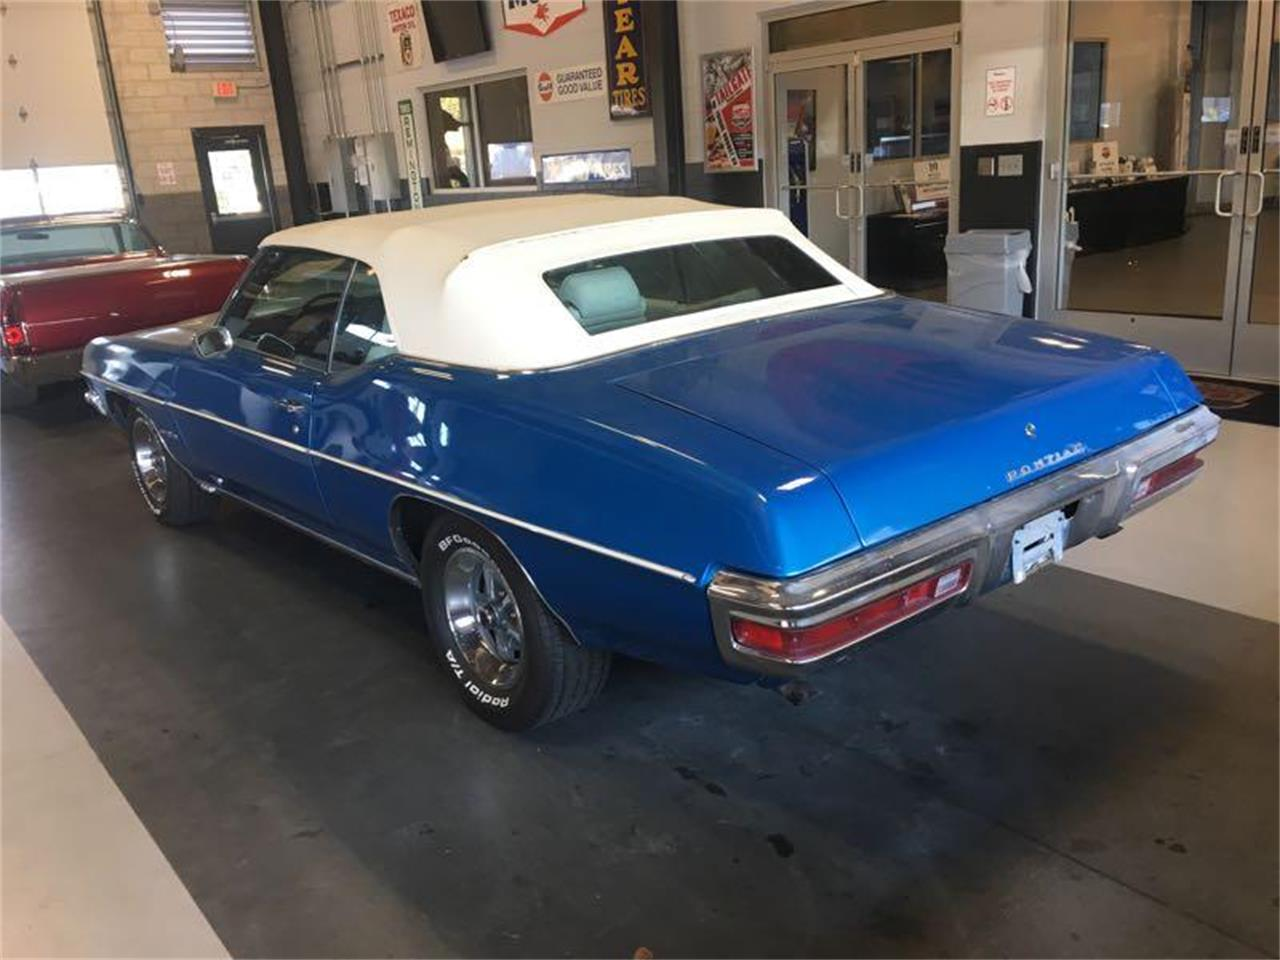 Large Picture of '72 Pontiac LeMans Auction Vehicle Offered by Motley's Richmond Auto Auction - QWUA